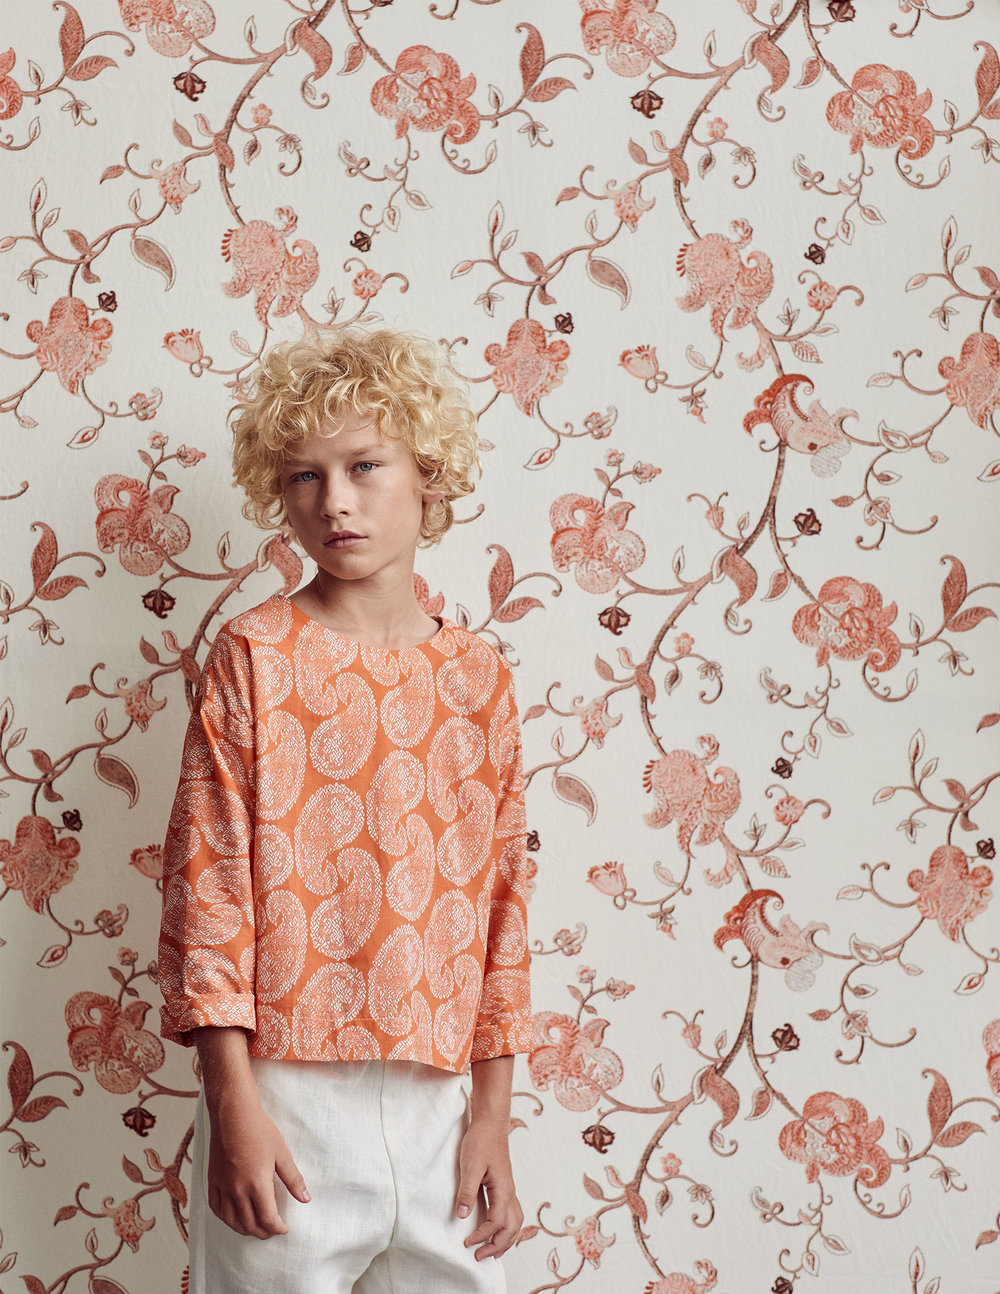 Wallpaper - Embroidered Garden in coriander :: Fabric - Worn Paisley reverse in coral, custom printed on cotton poplin for this shoot.